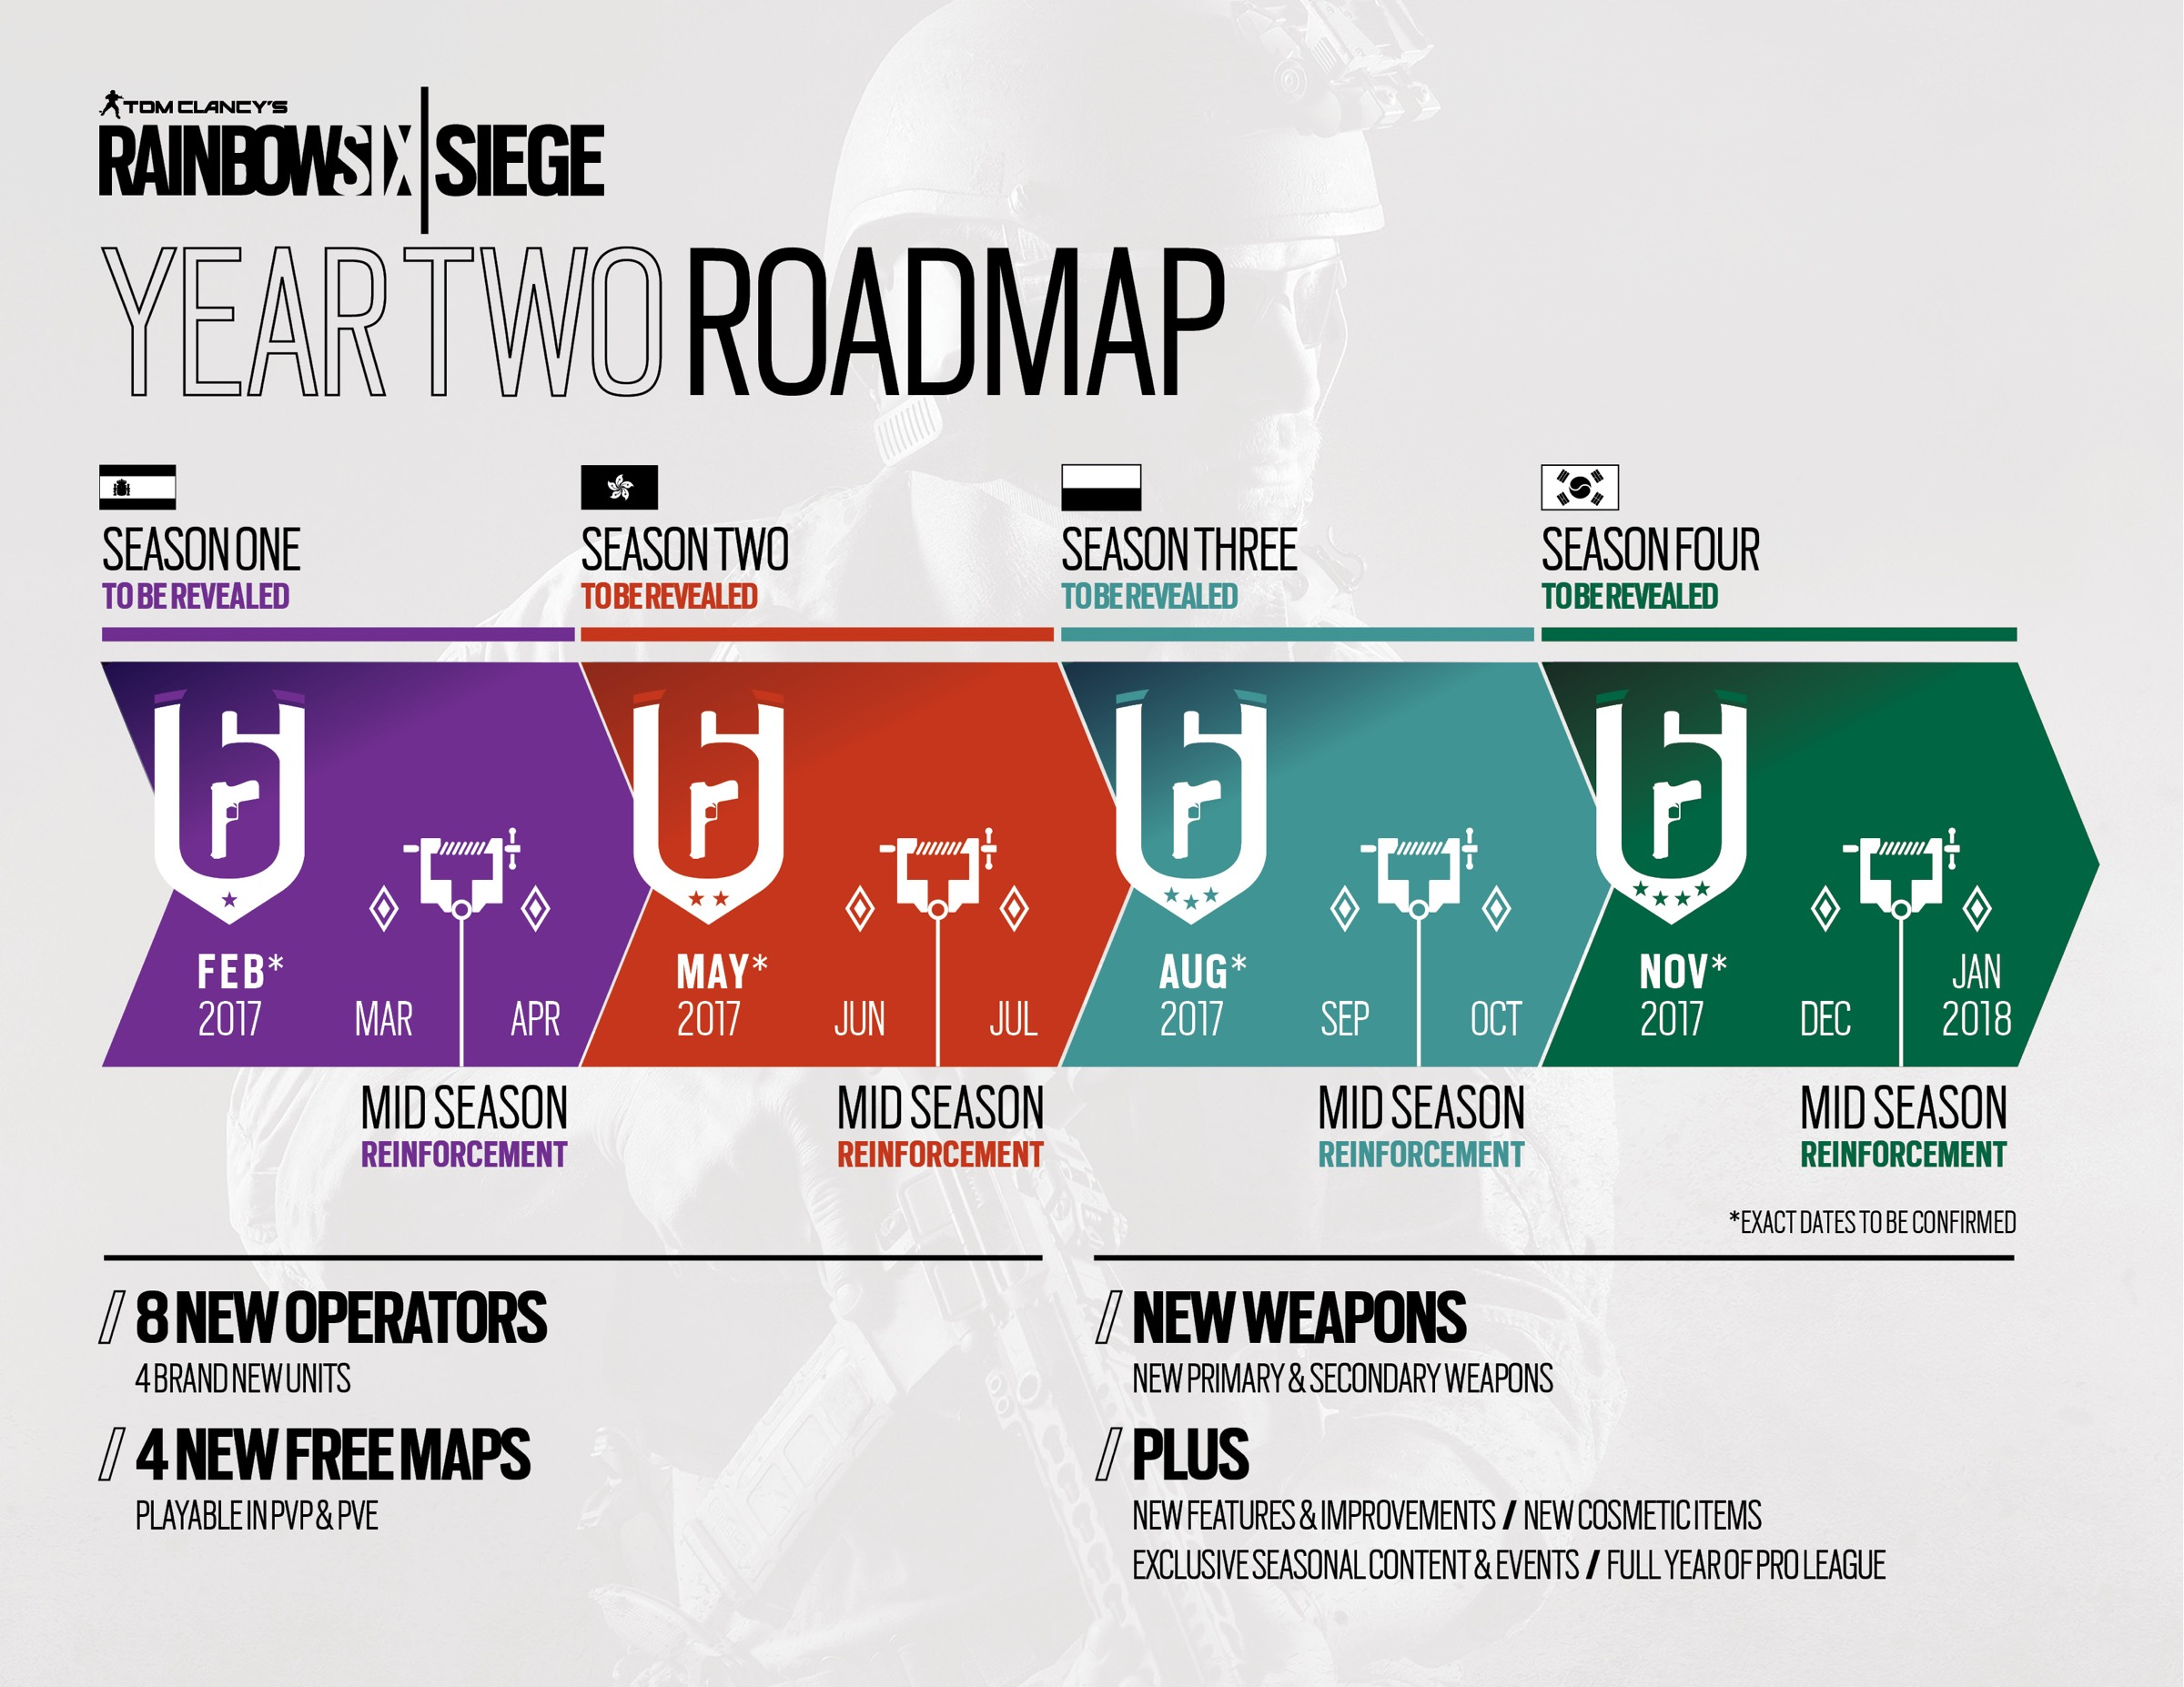 rainbow-six-siege-year-two-roadmap-06